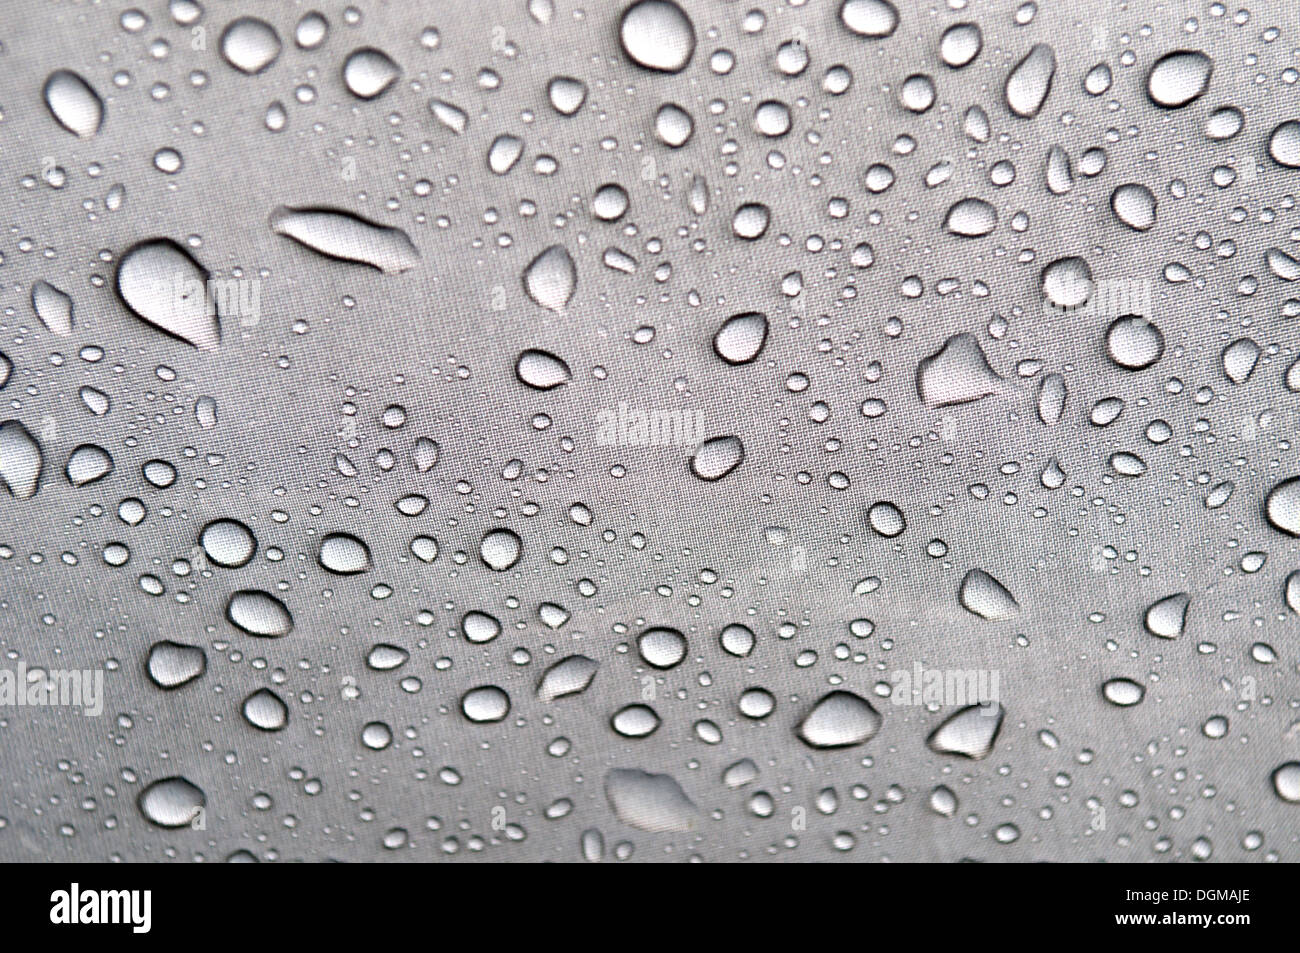 Raindrops settle on waterproof nylon tent material  sc 1 st  Alamy & Raindrops settle on waterproof nylon tent material Stock Photo ...